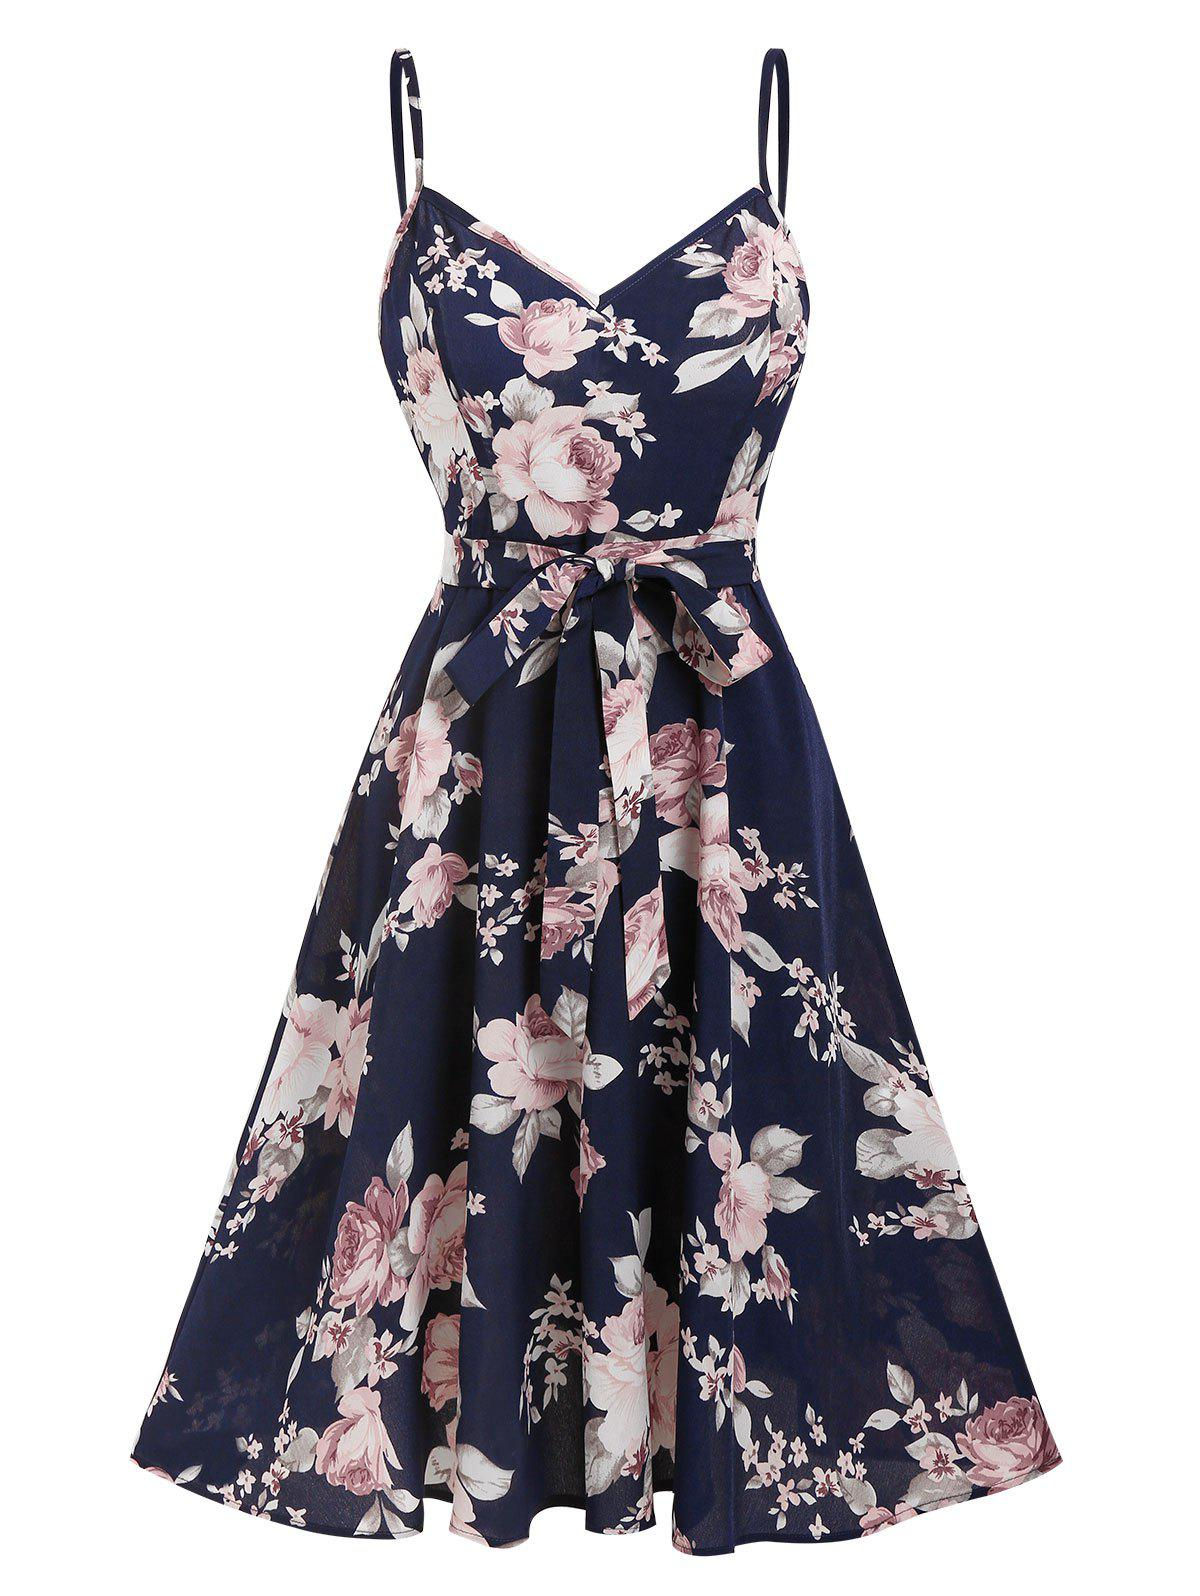 Fashion Bohemian Floral Print Belted Knee Length Dress